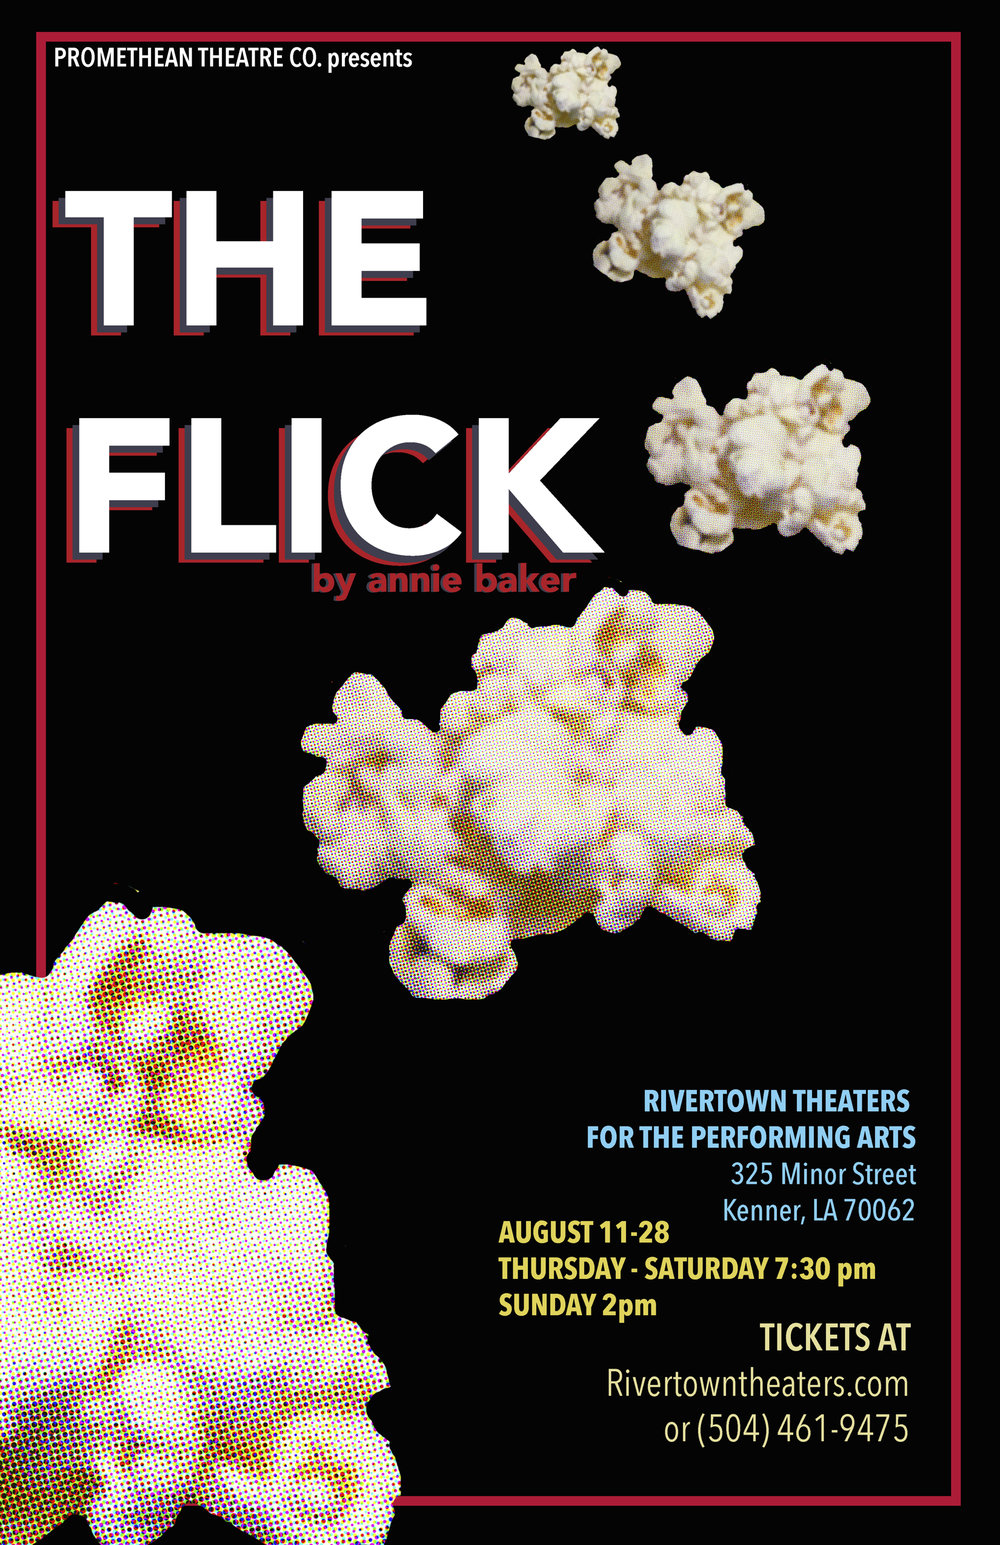 THE FLICK Poster.jpg